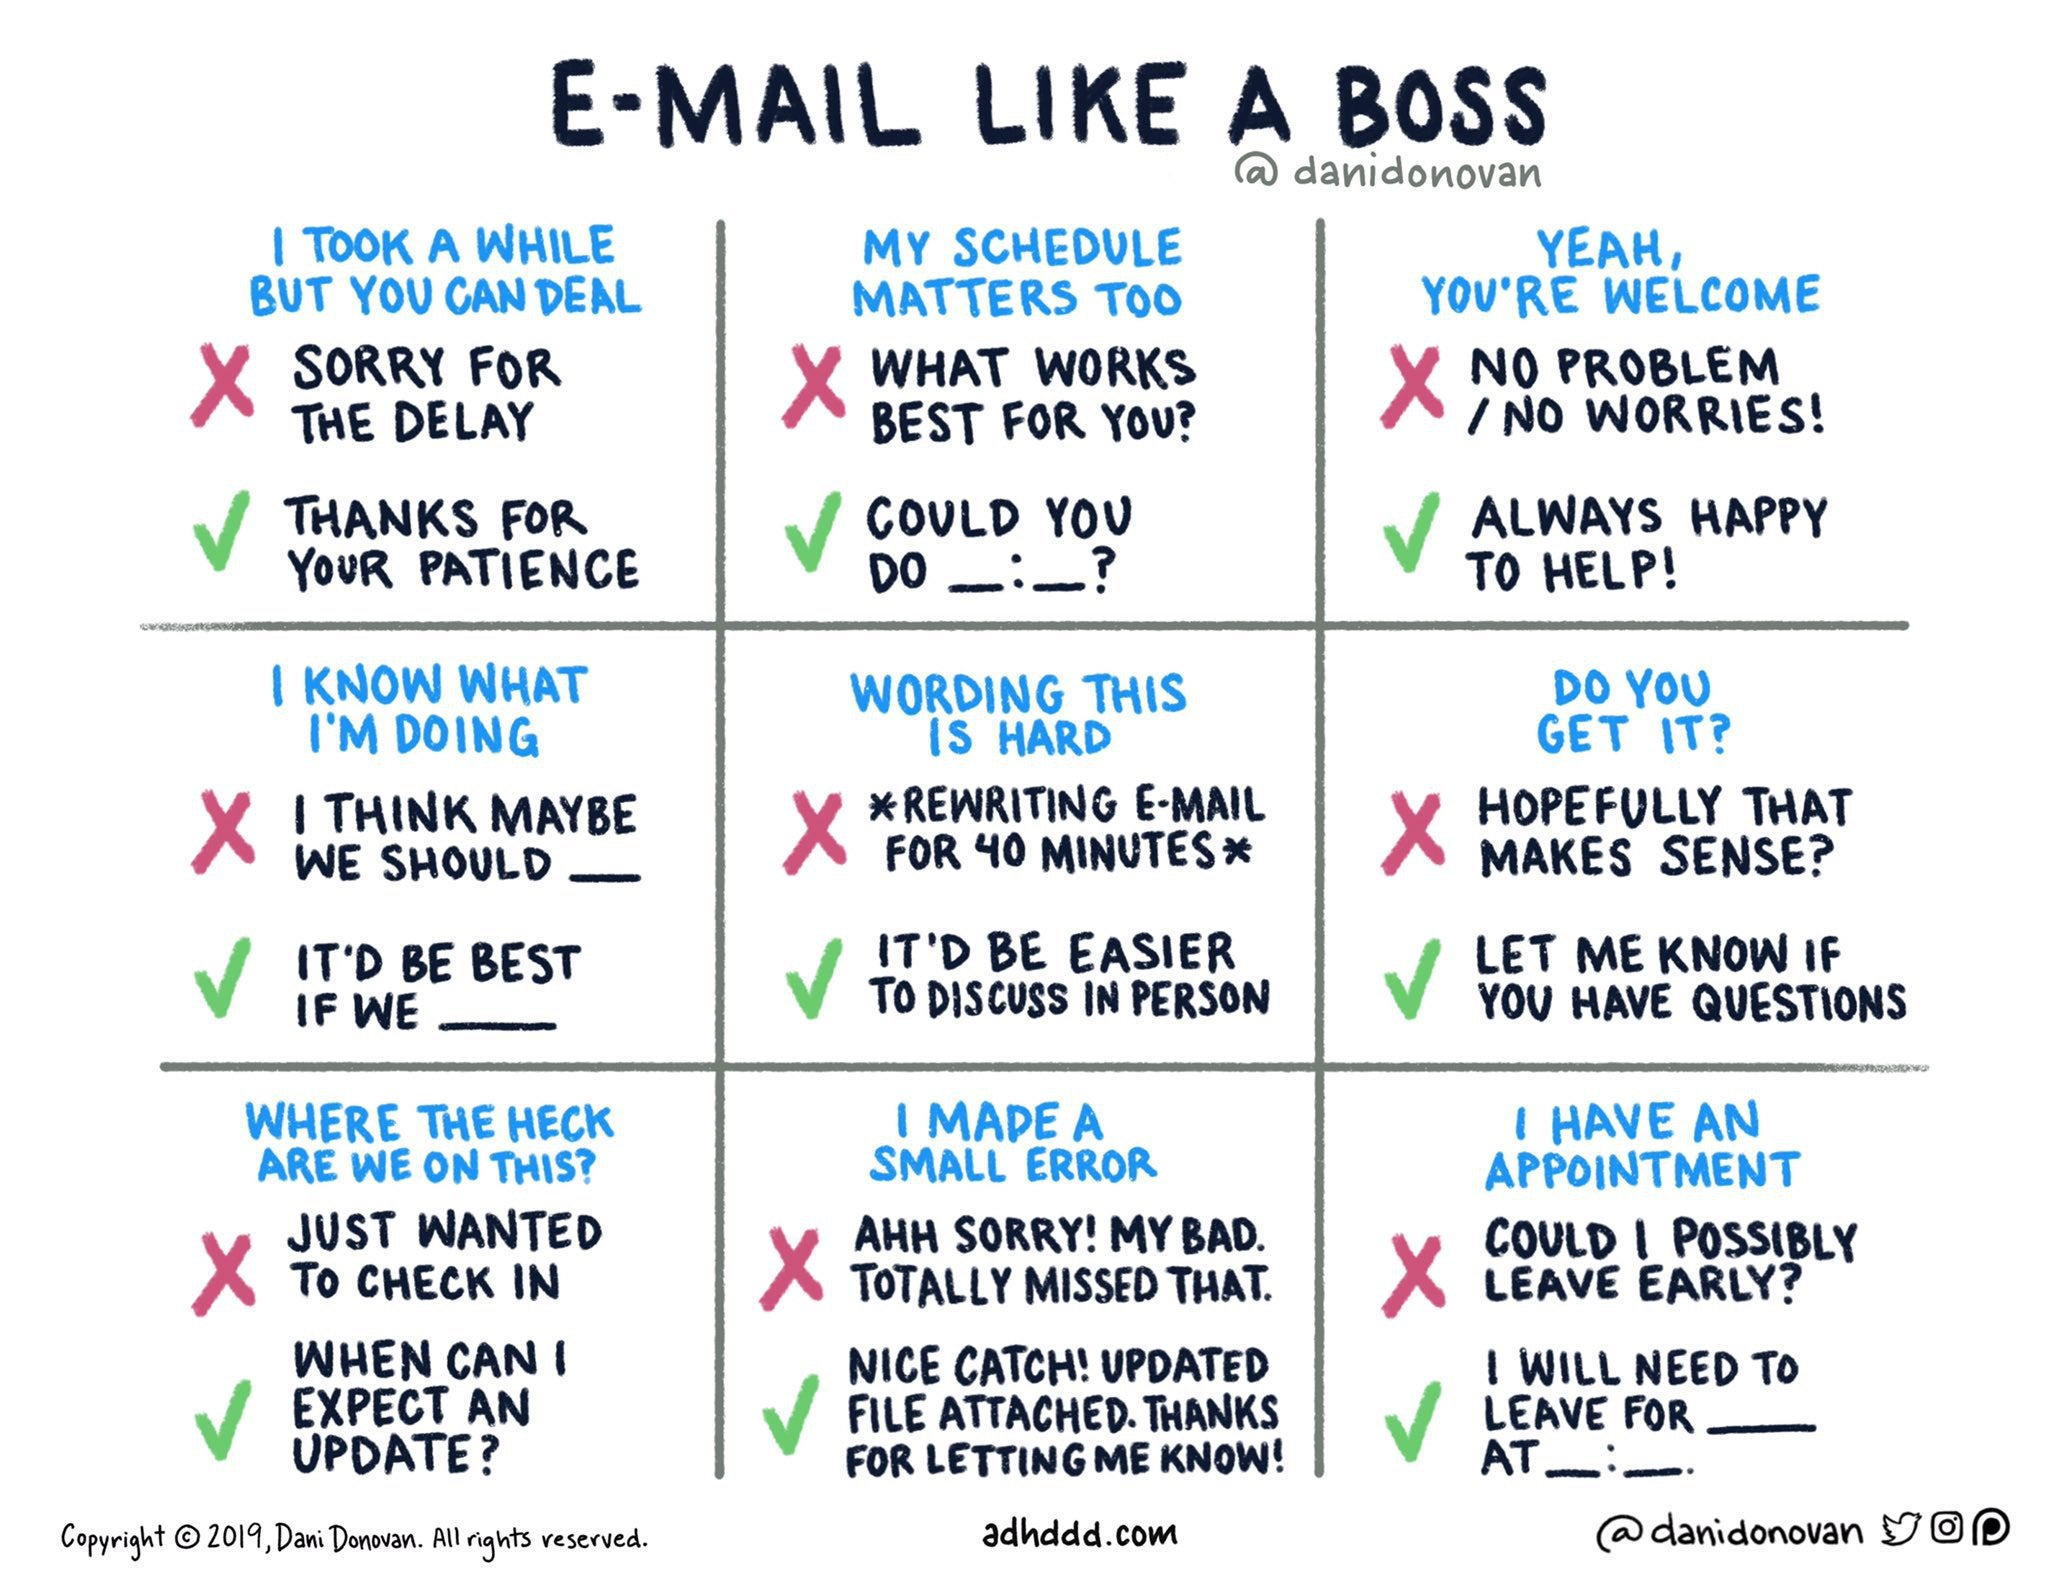 email like a boss by Dani Donovan